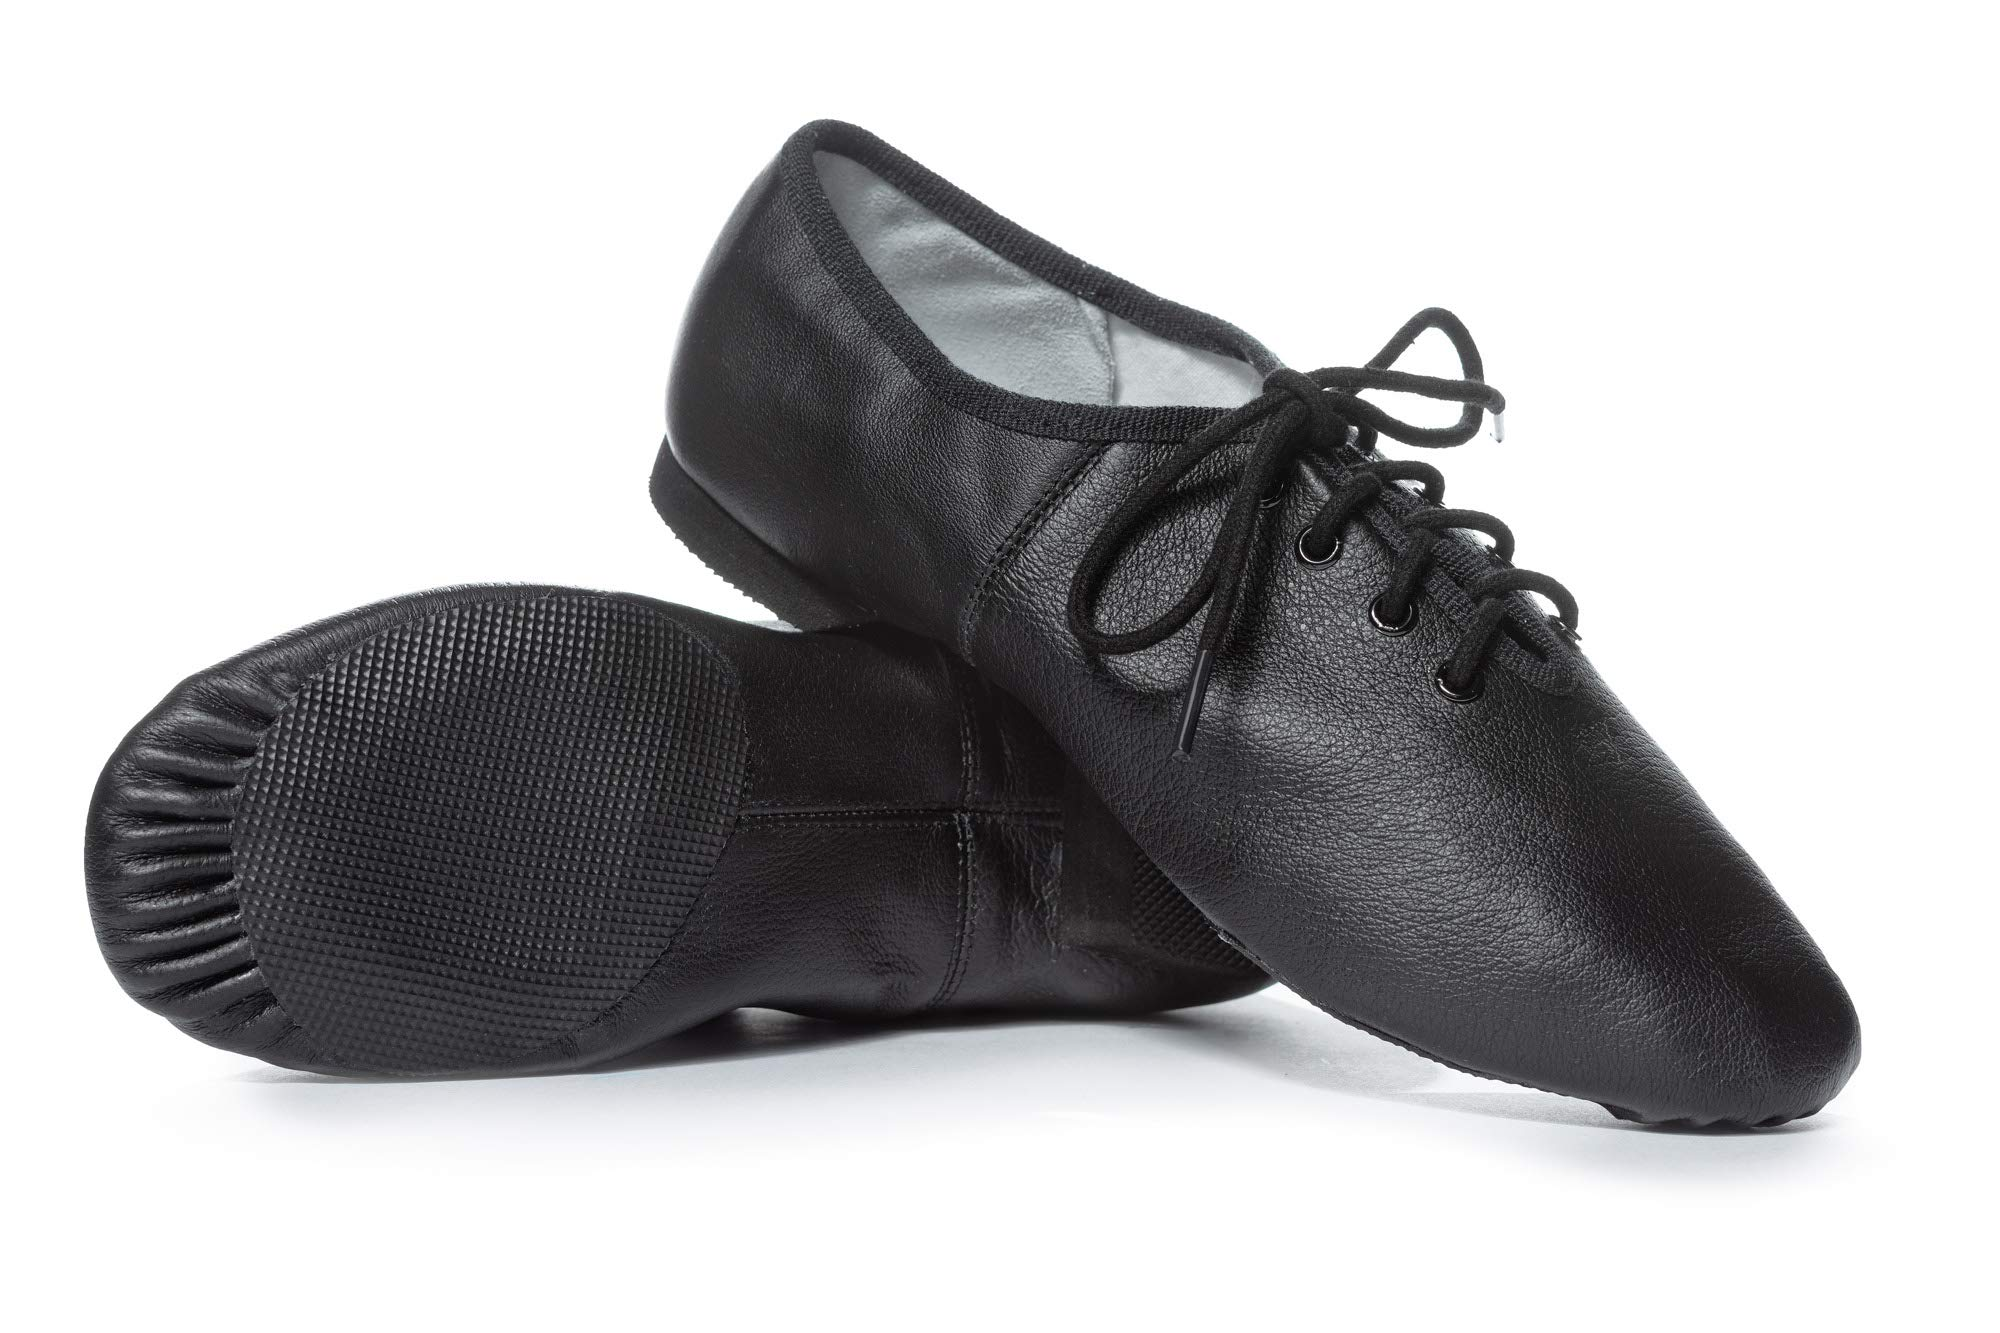 Theatricals Adult Lace Up Jazz Shoes T7302BLK09.5M Black 9.5 M US by Theatricals